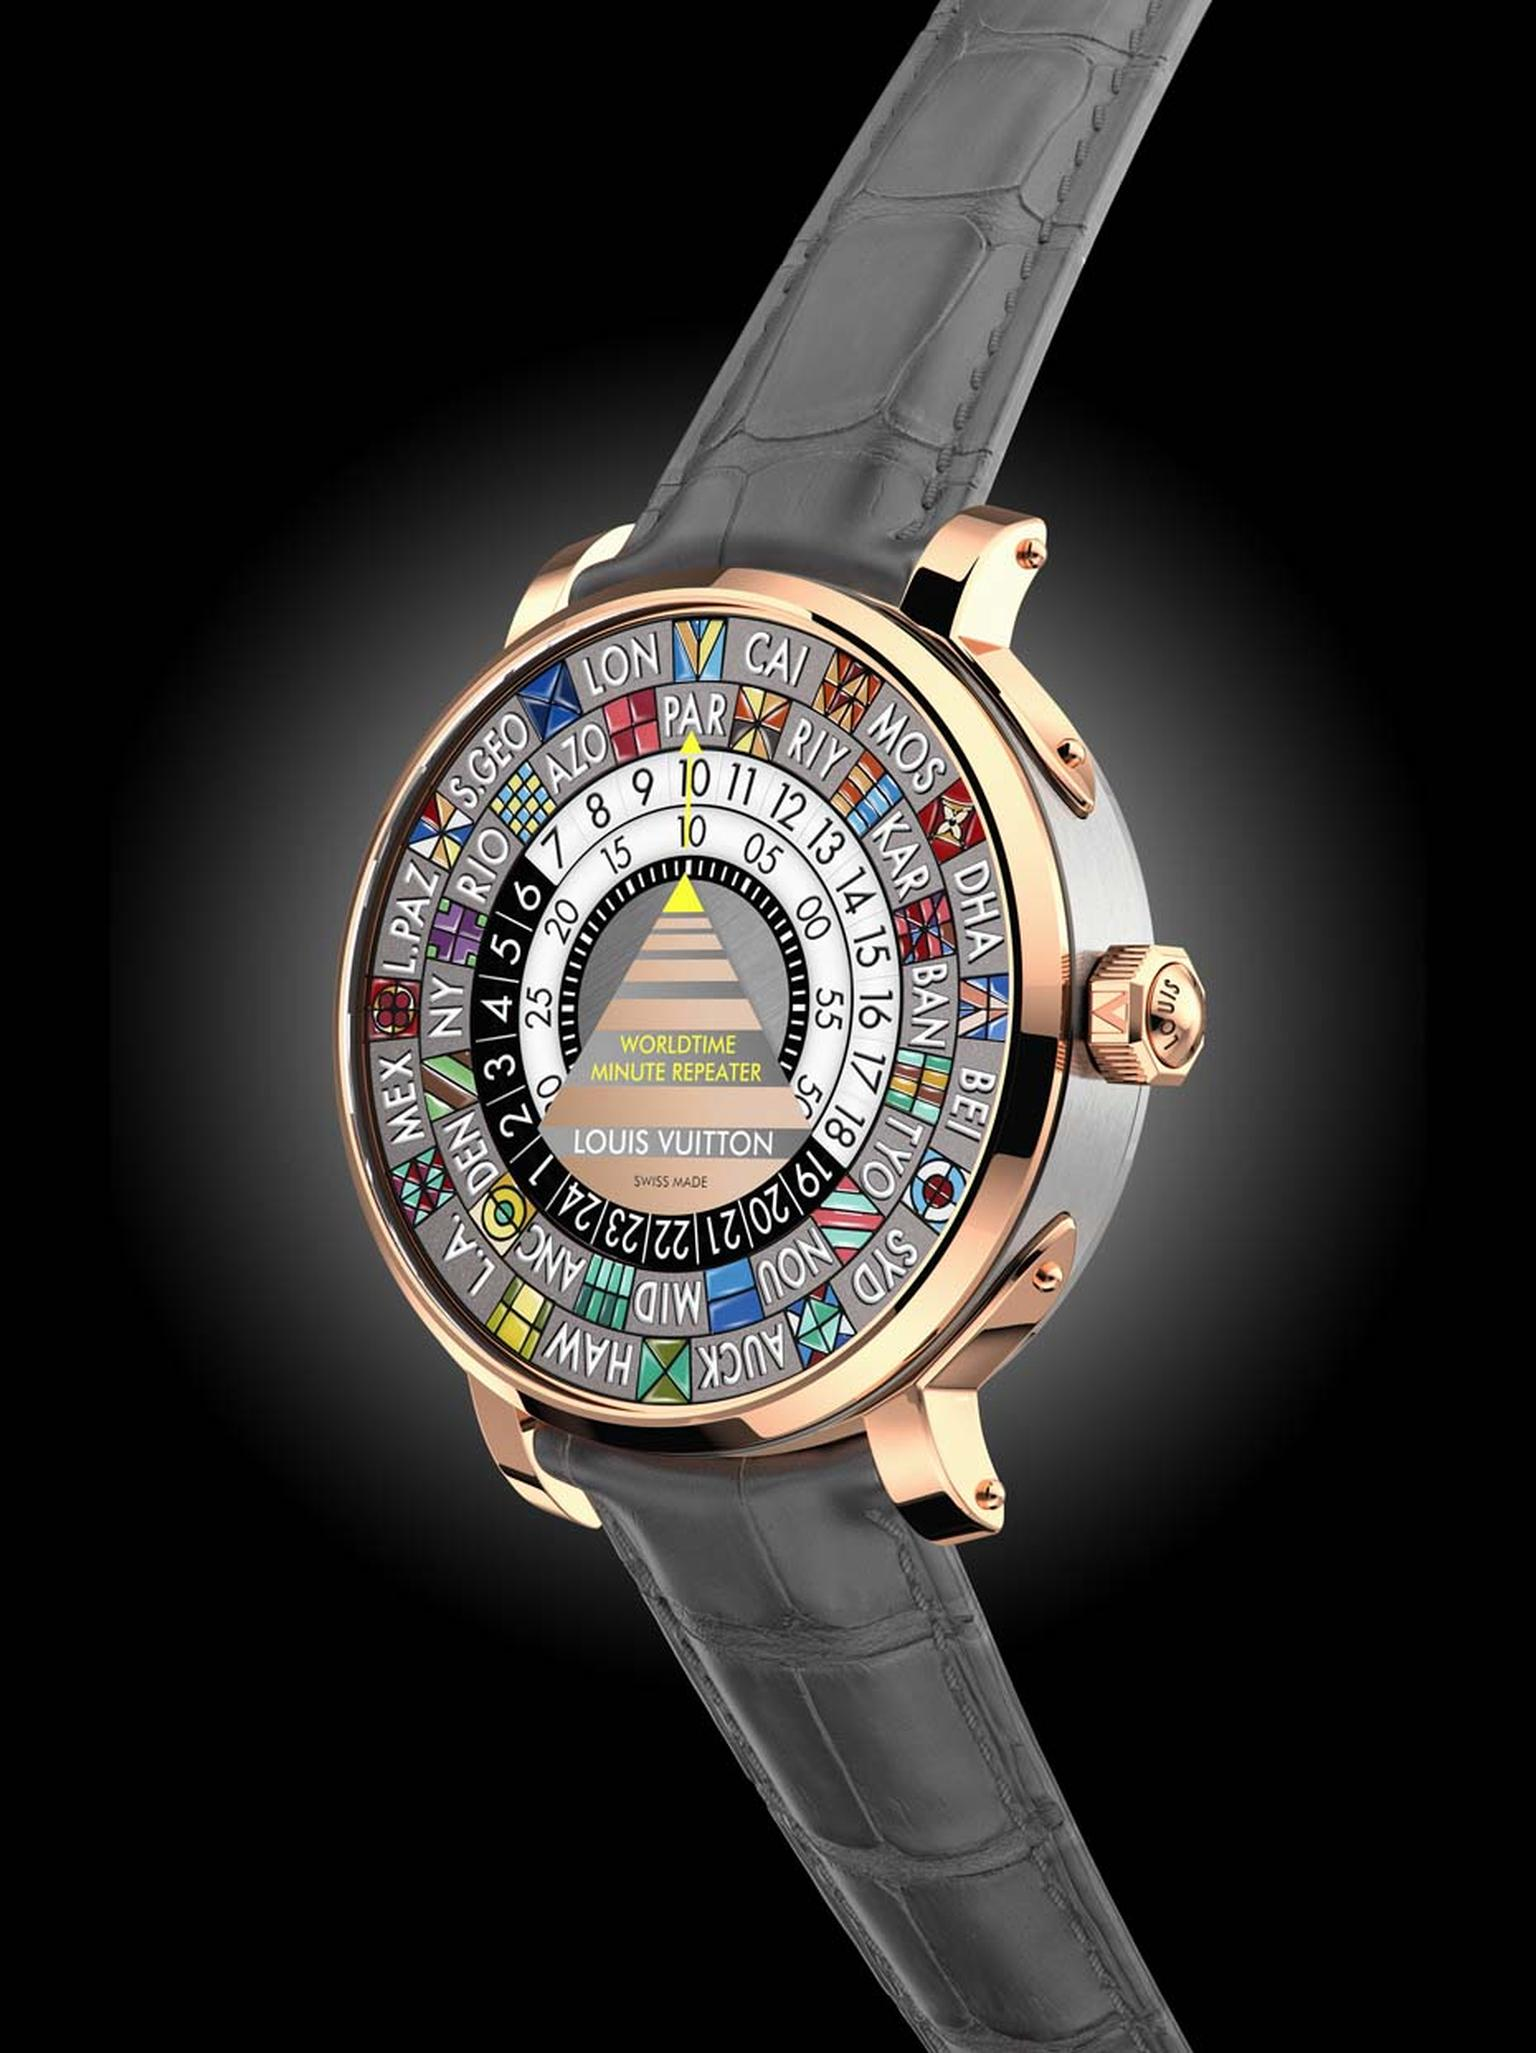 Louis Vuitton_Escale Worldtime Minute Repeater_watch side black bground.jpg